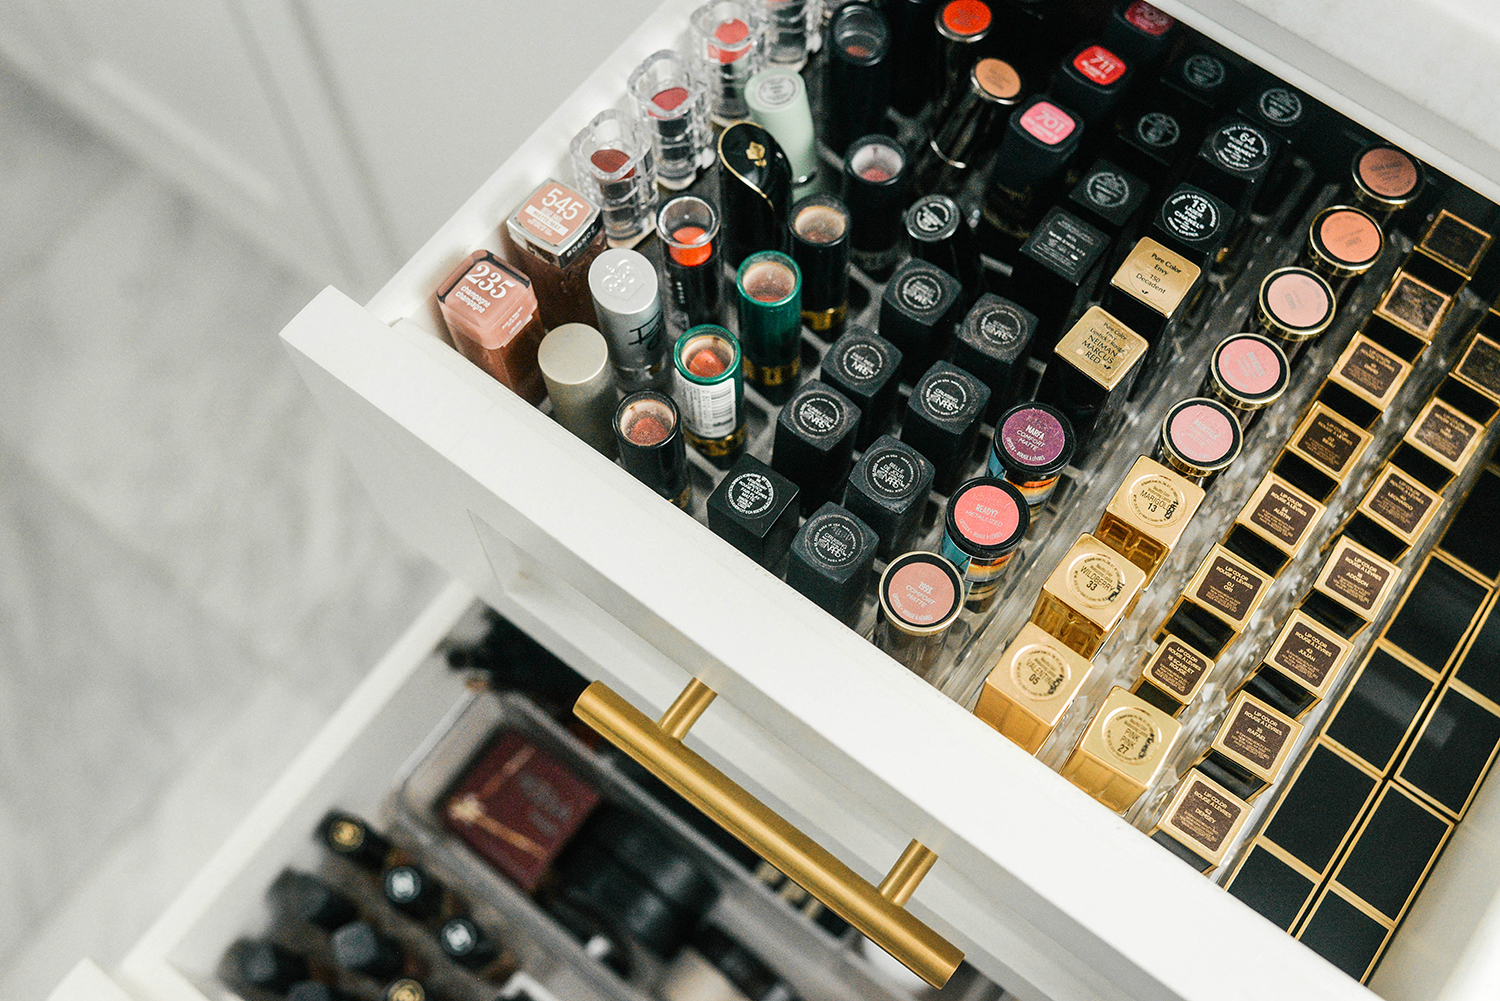 Best Tips for Organizing your Beauty Products and Makeup